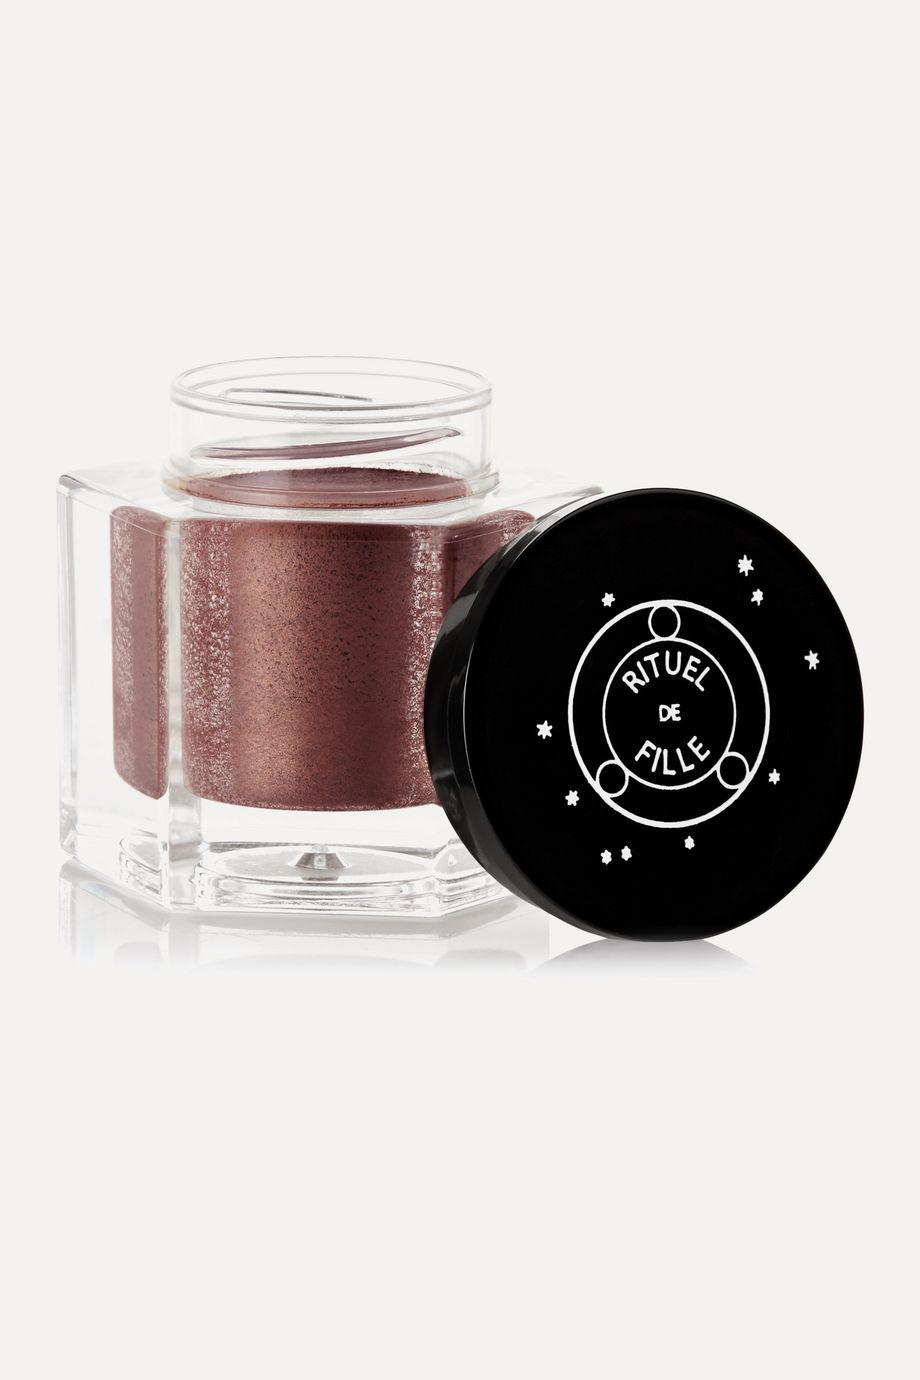 Rituel de Fille Ash and Ember Eye Soot - Exuviae